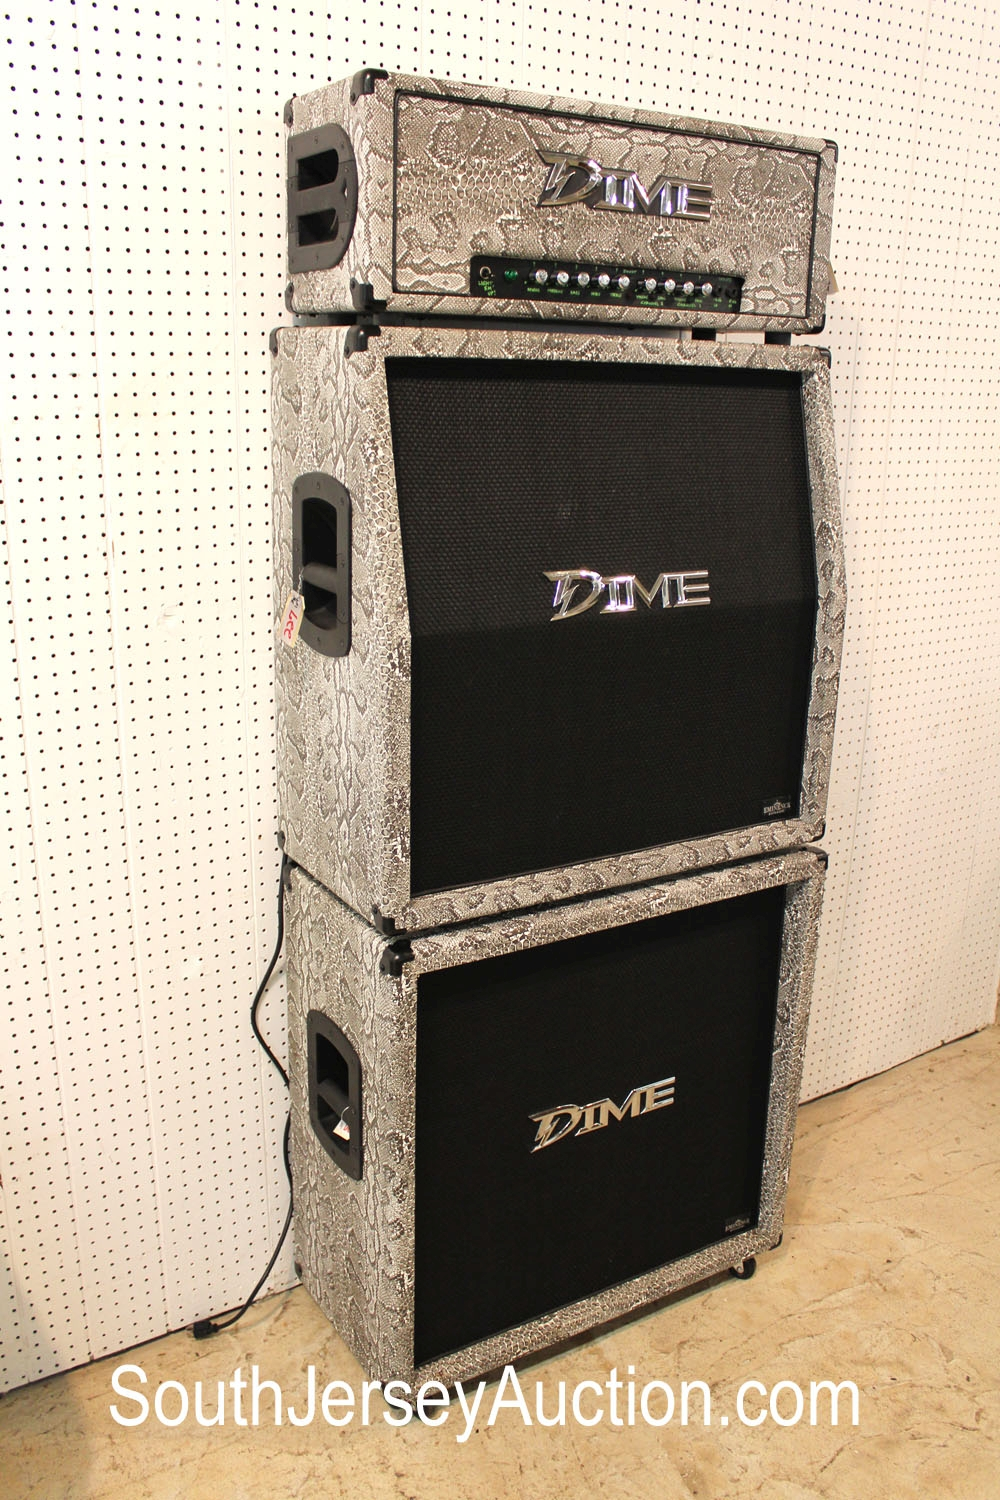 Full Stack, Dime Amplification System, Snake Skin Tolex, made in and tributed to Dime Bag Darrell from Pantera, in very good condition, #1 of #1 known, too expensive to mass produce, with manuals and original shipping packing, (3 piece lot of 2 speakers cabinets and the head)